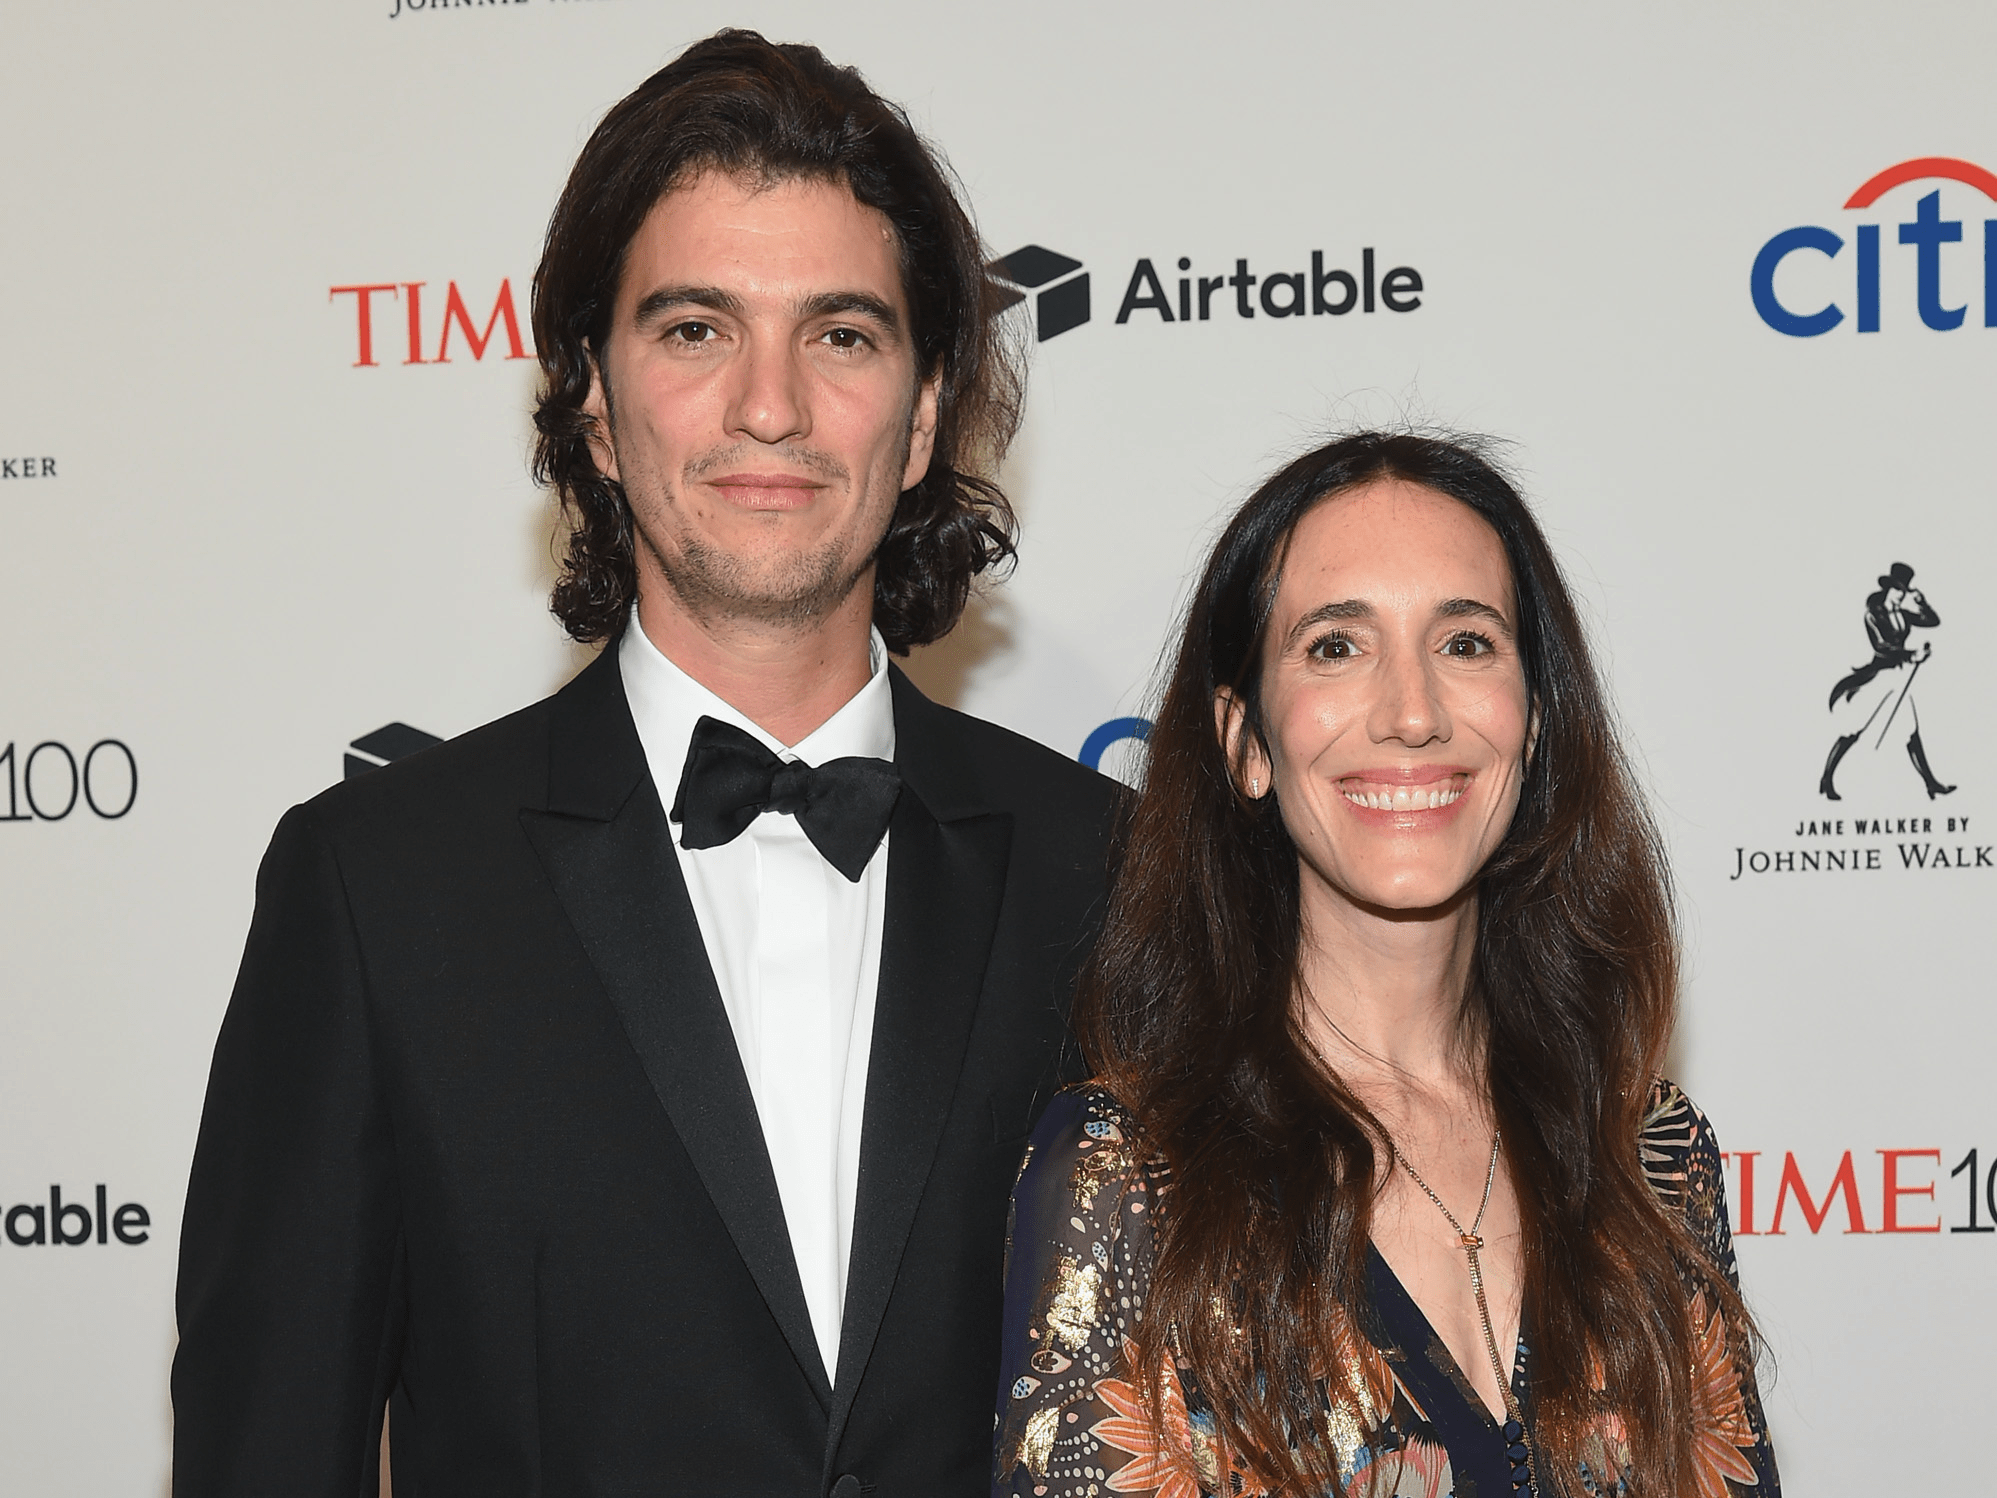 NEW YORK, NY - APRIL 24: WeWork Co-Founder and CEO Adam Neumann and Rebekah Paltrow Neumann attend the 2018 Time 100 Gala at Jazz at Lincoln Center on April 24, 2018 in New York City.